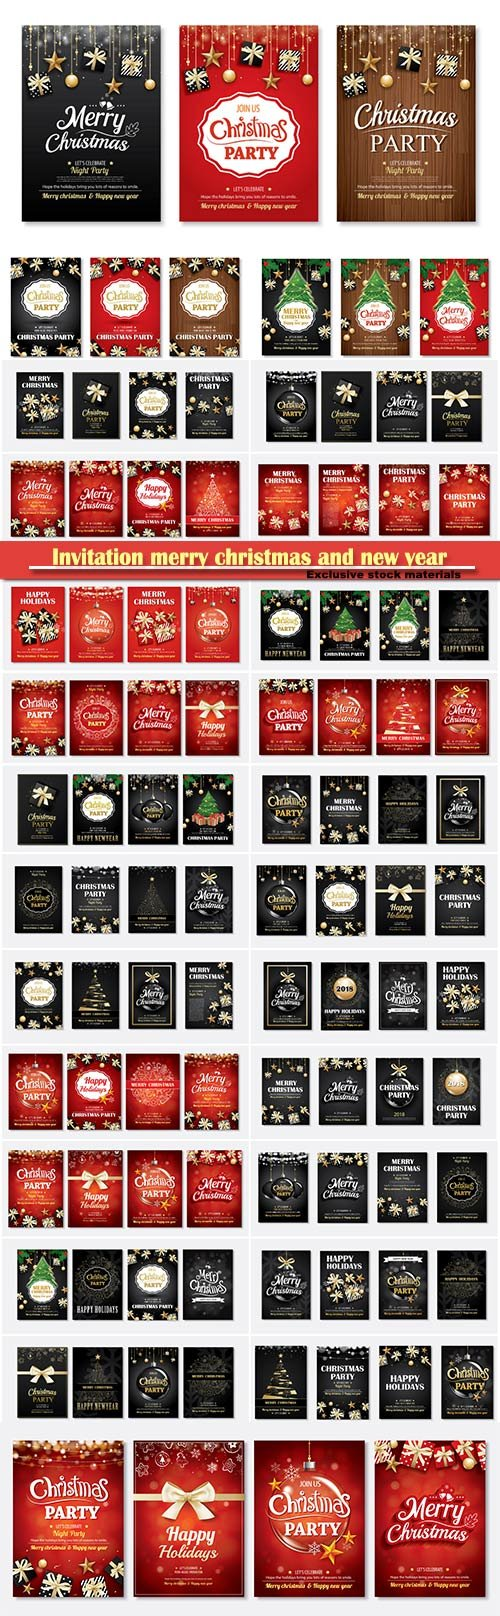 Invitation merry christmas and new year party poster banner